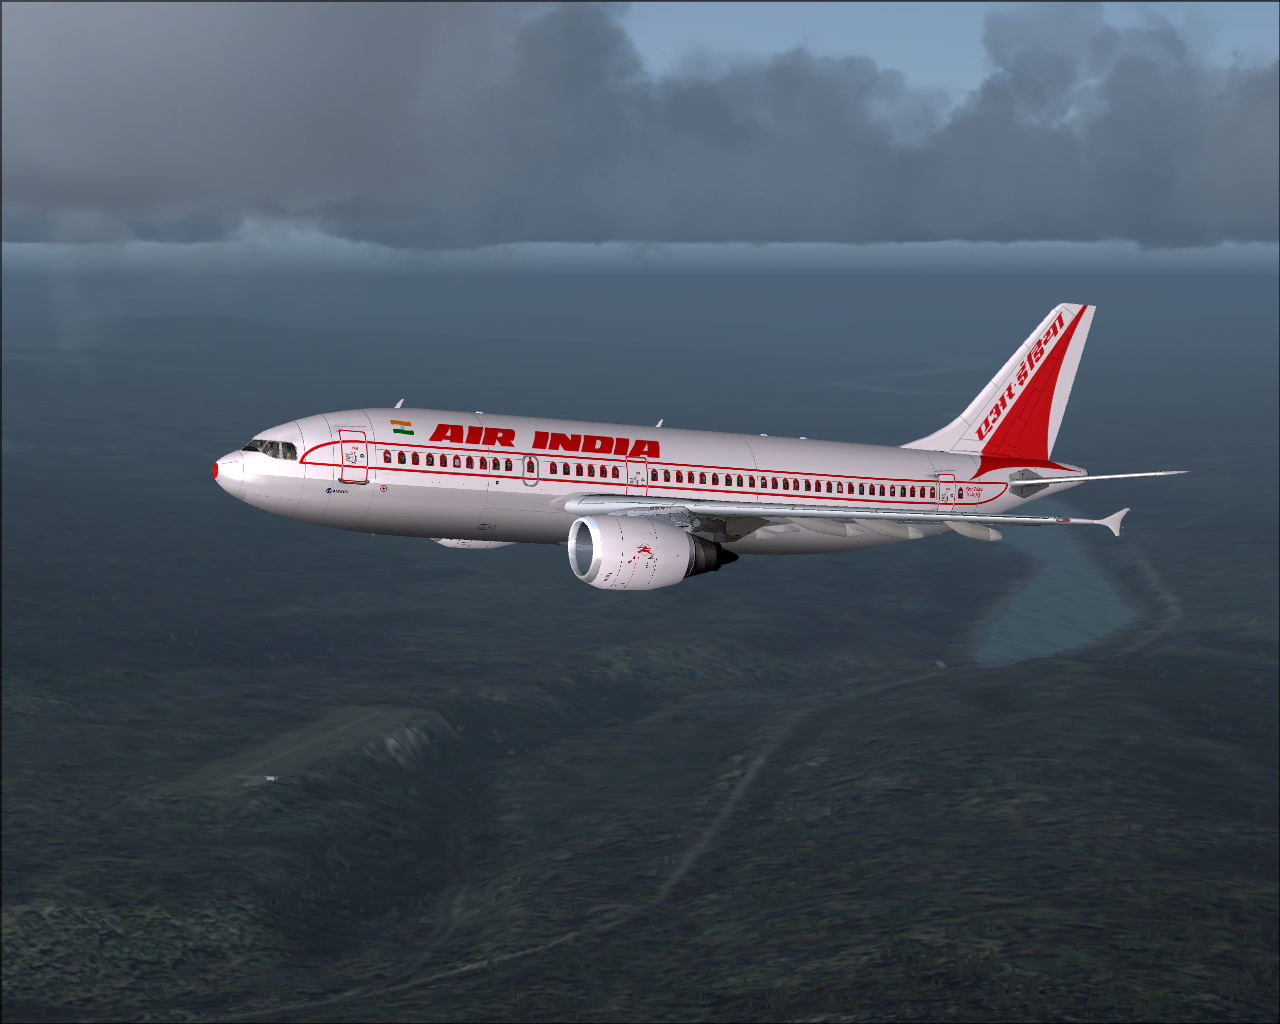 HC tells Air India pilots to end strike immediately or face contempt of court action